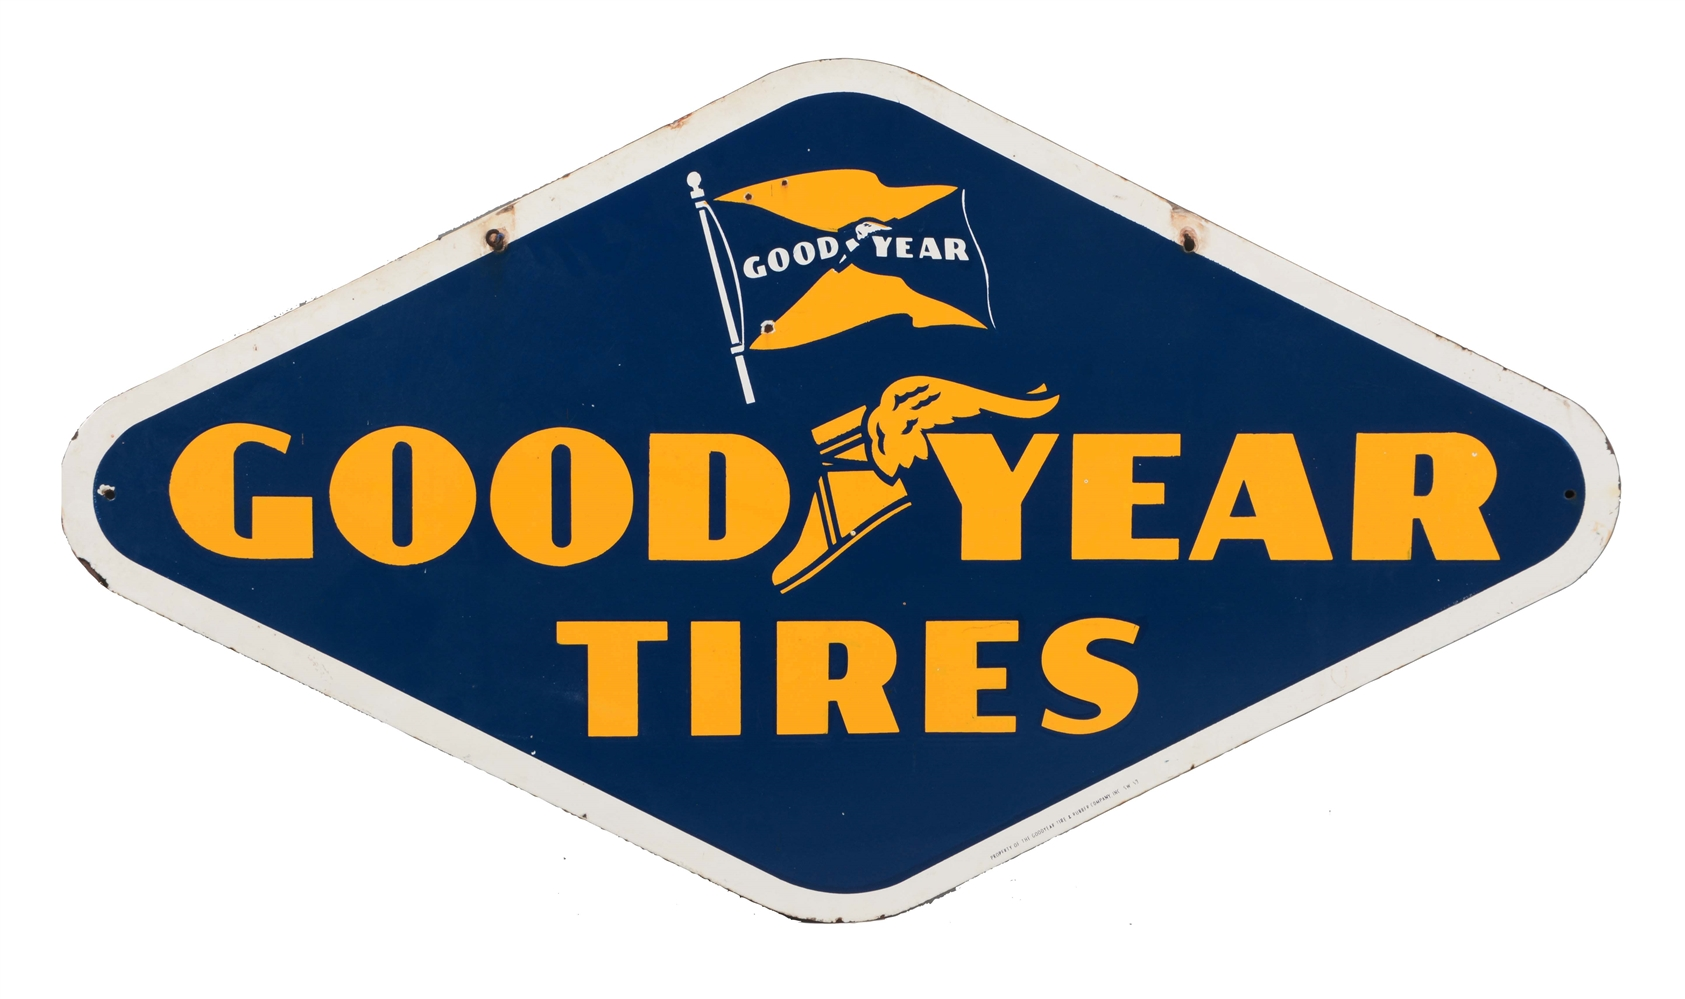 Good Year Tires Diamond Shaped Porcelain Sign.